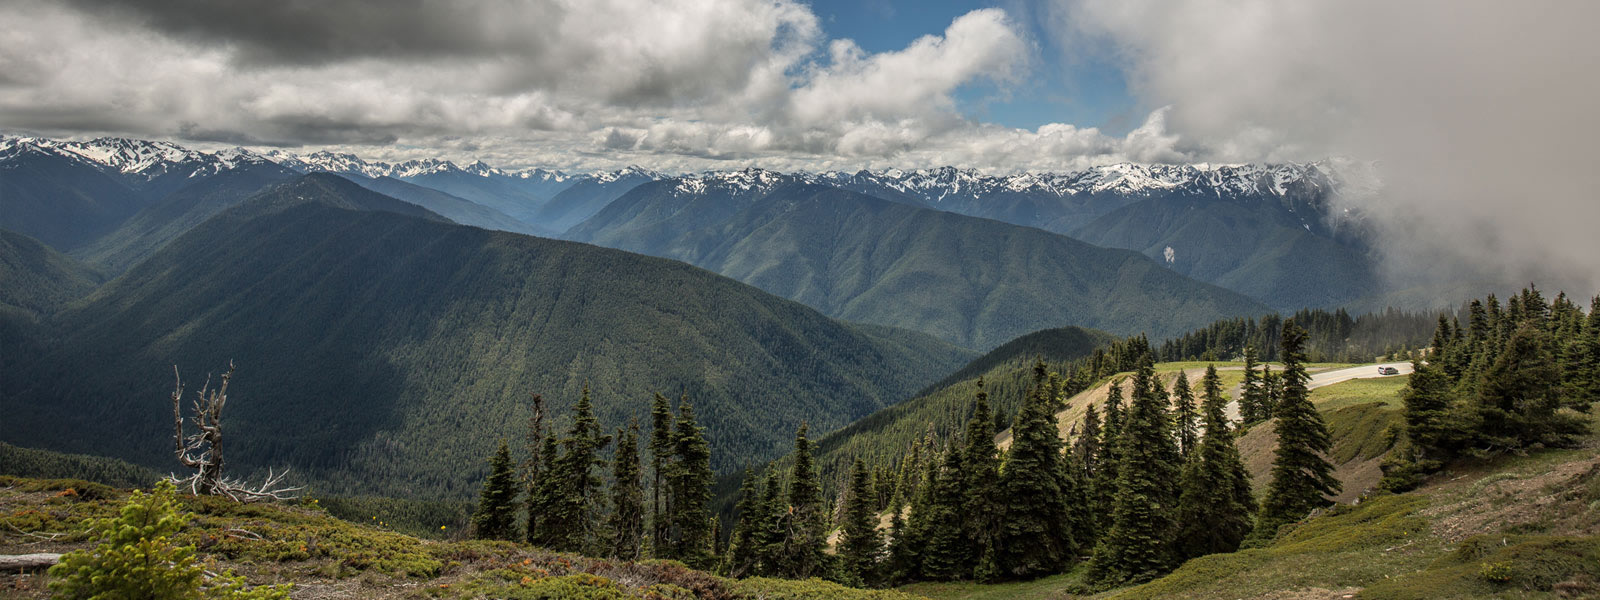 hurricane ridge olympic national park